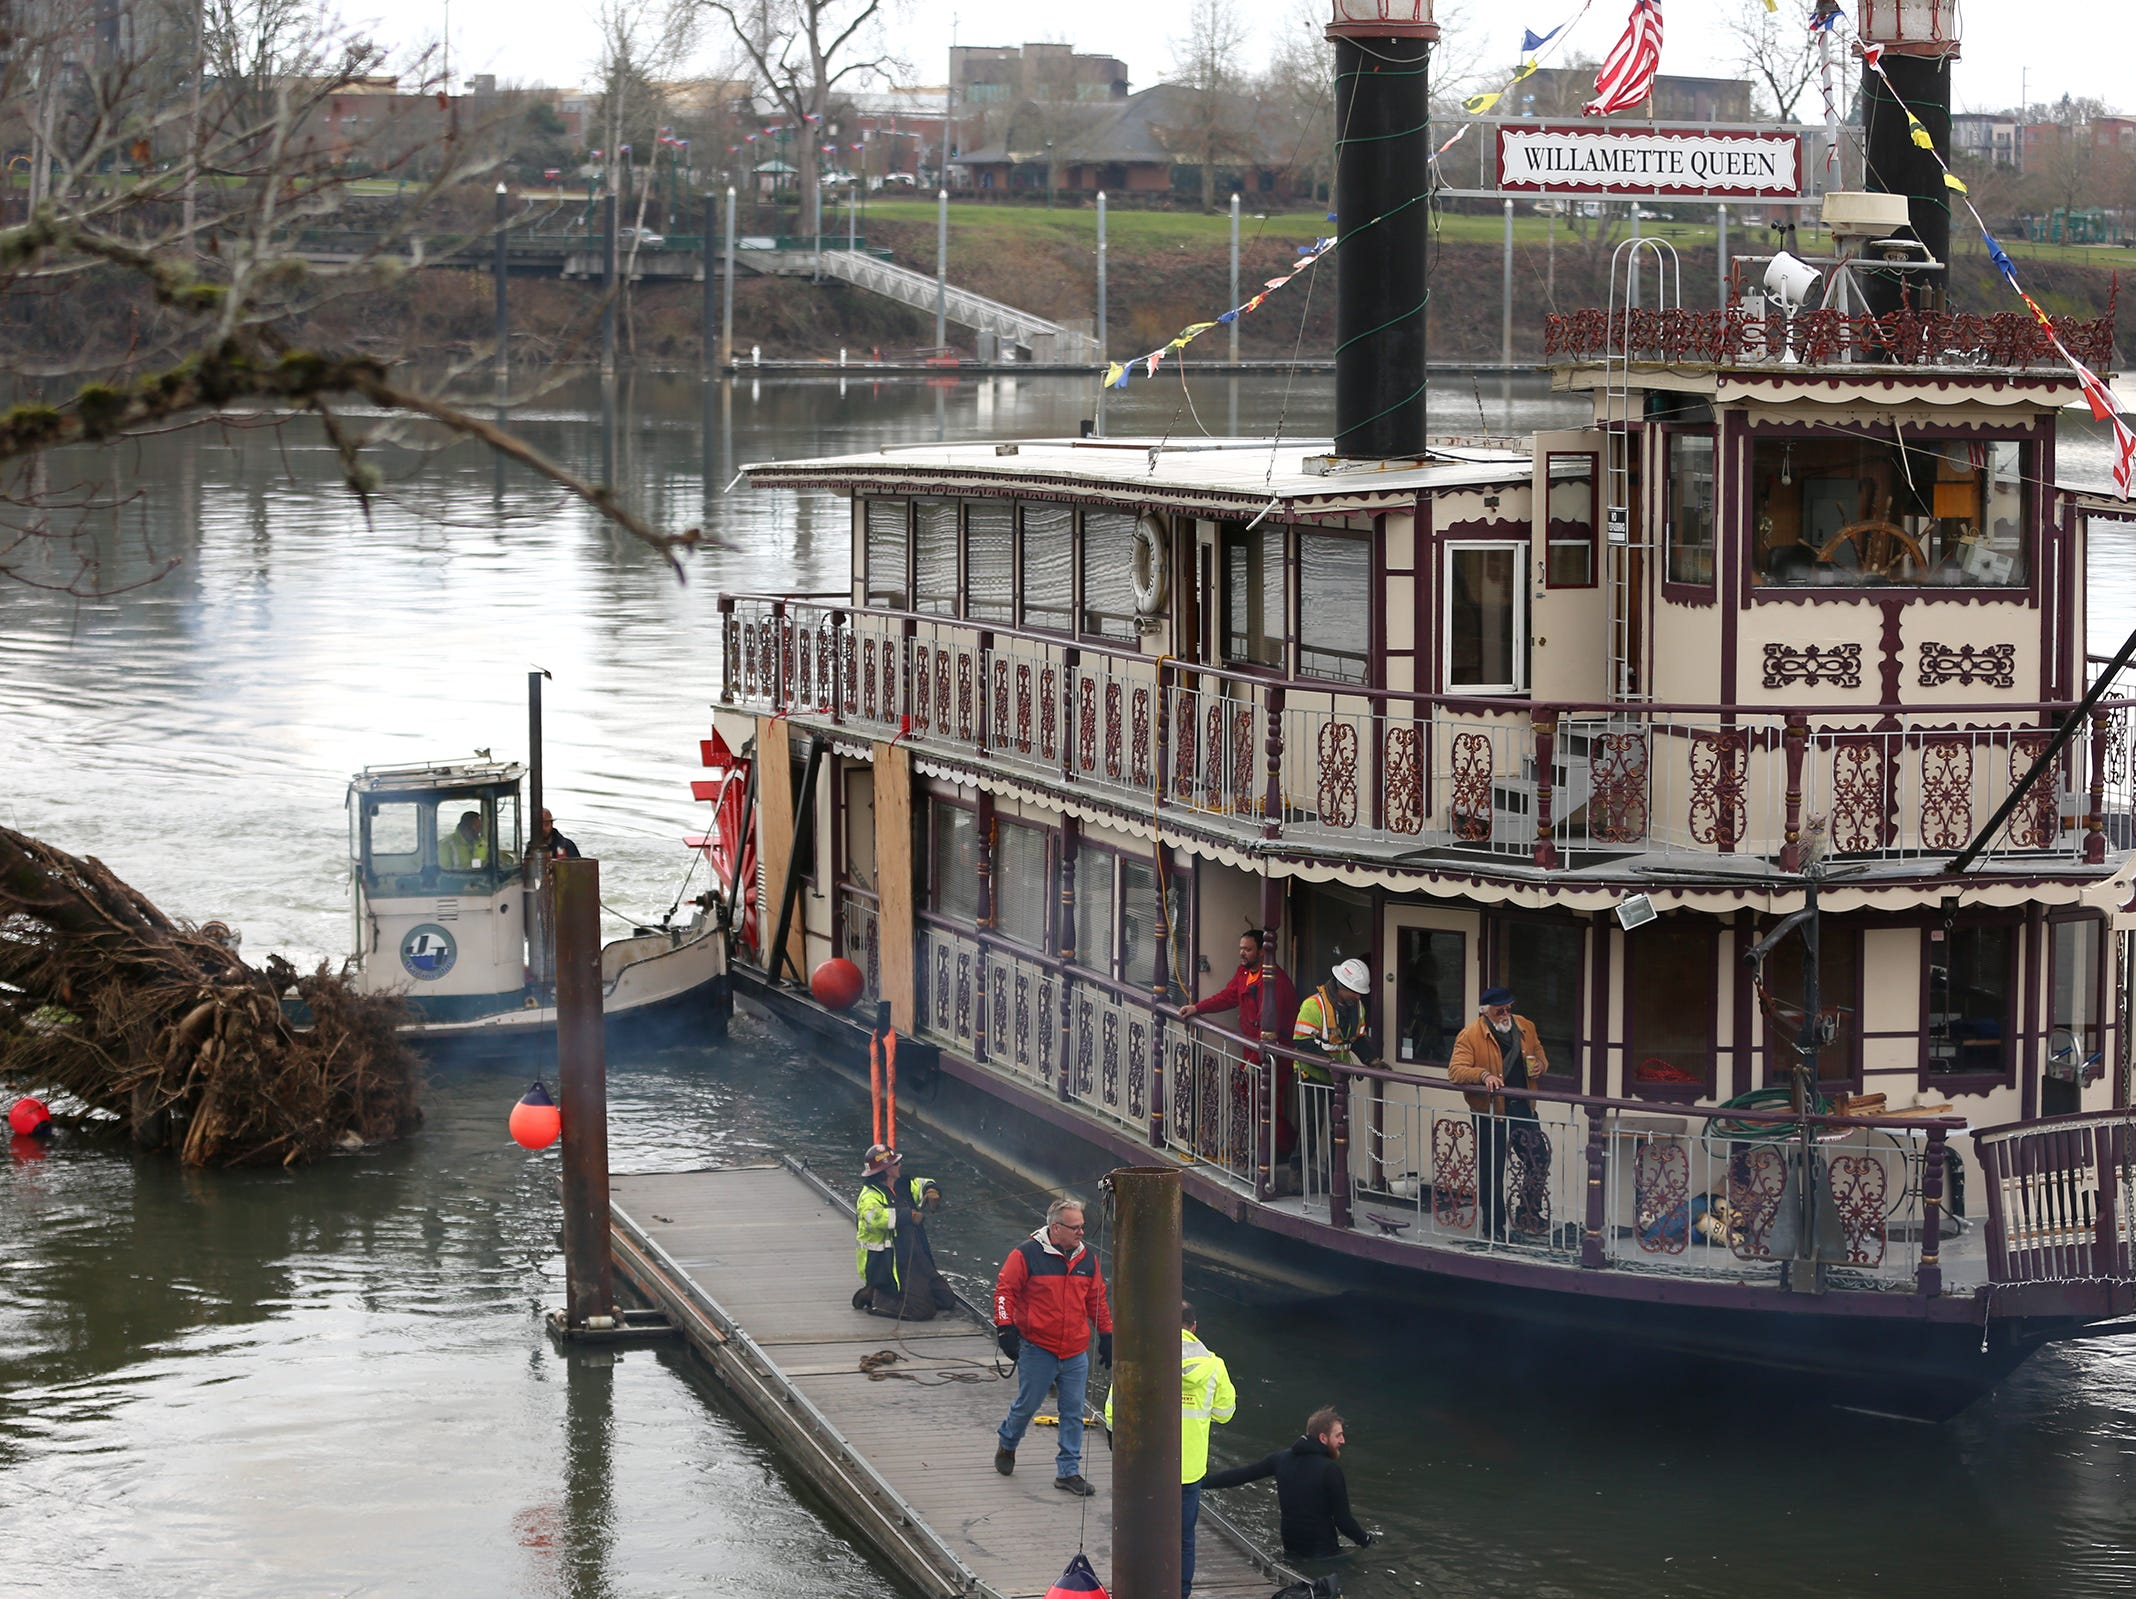 The Willamette Queen was brought ashore  for fiberglass repairs in Salem on Wednesday, Feb. 6, 2019. The crew removed the tree (left) before getting the boat out.